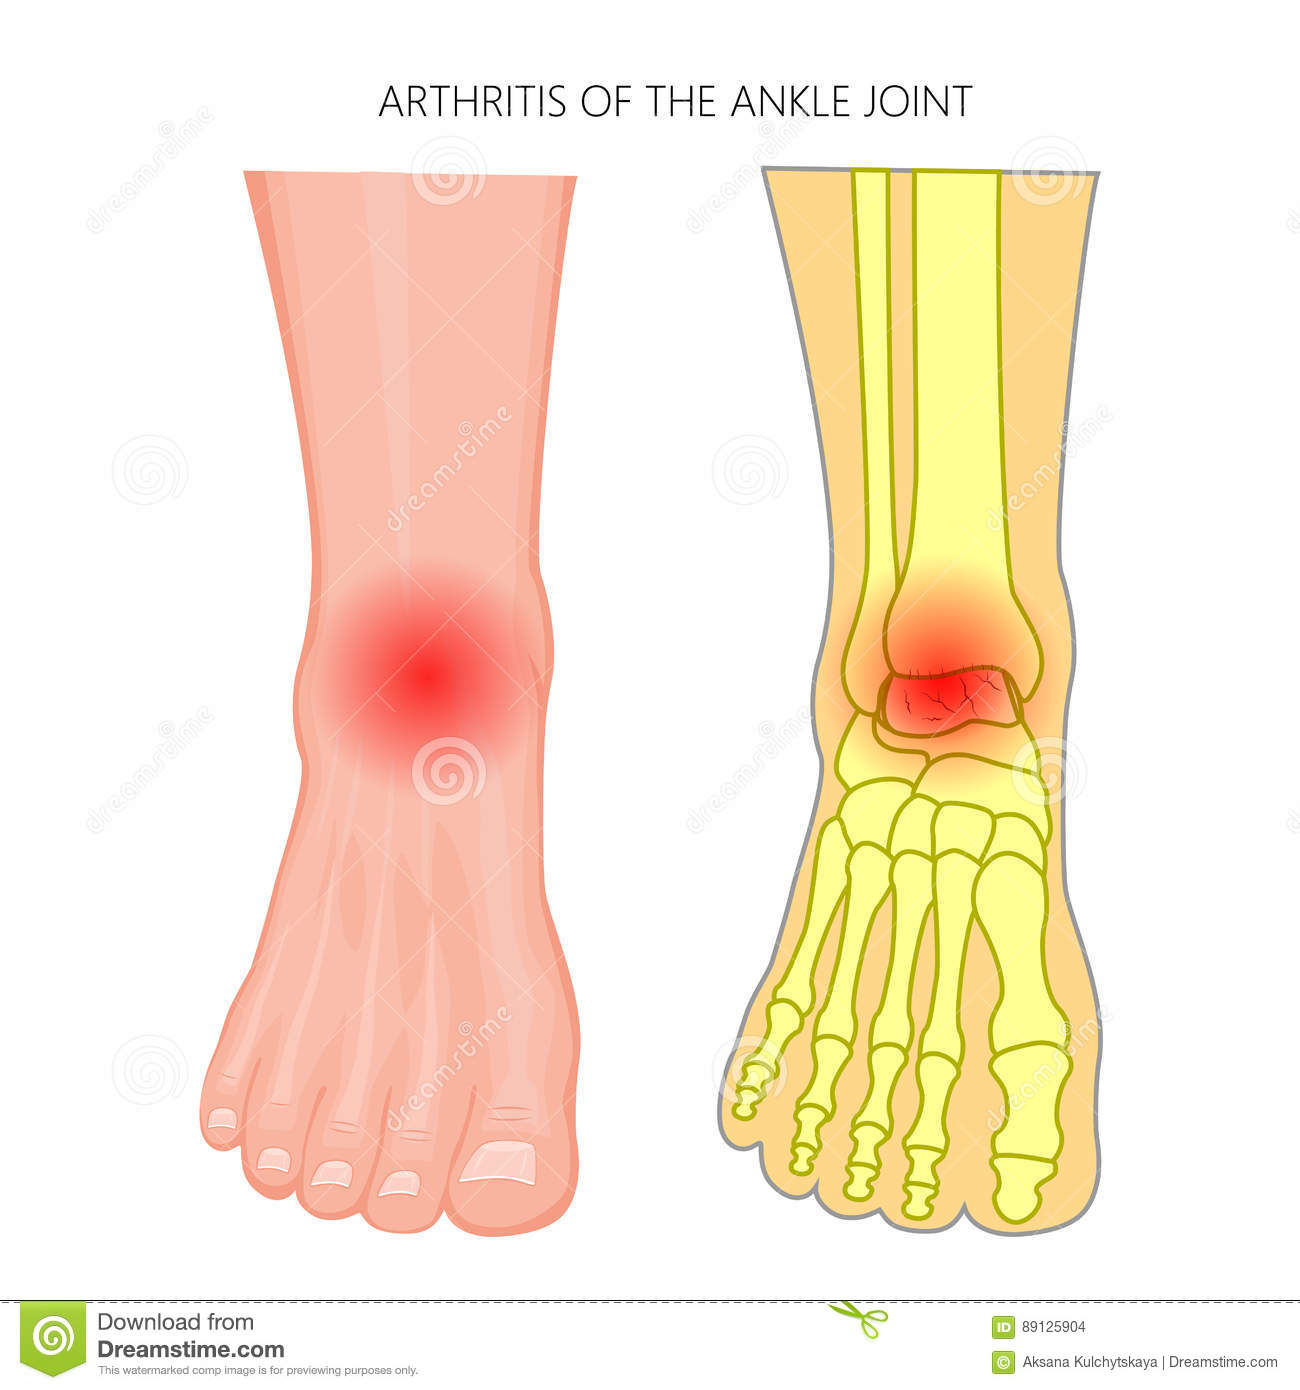 Arthritis Of The Ankle Joint Stock Vector - Illustration of foot ...